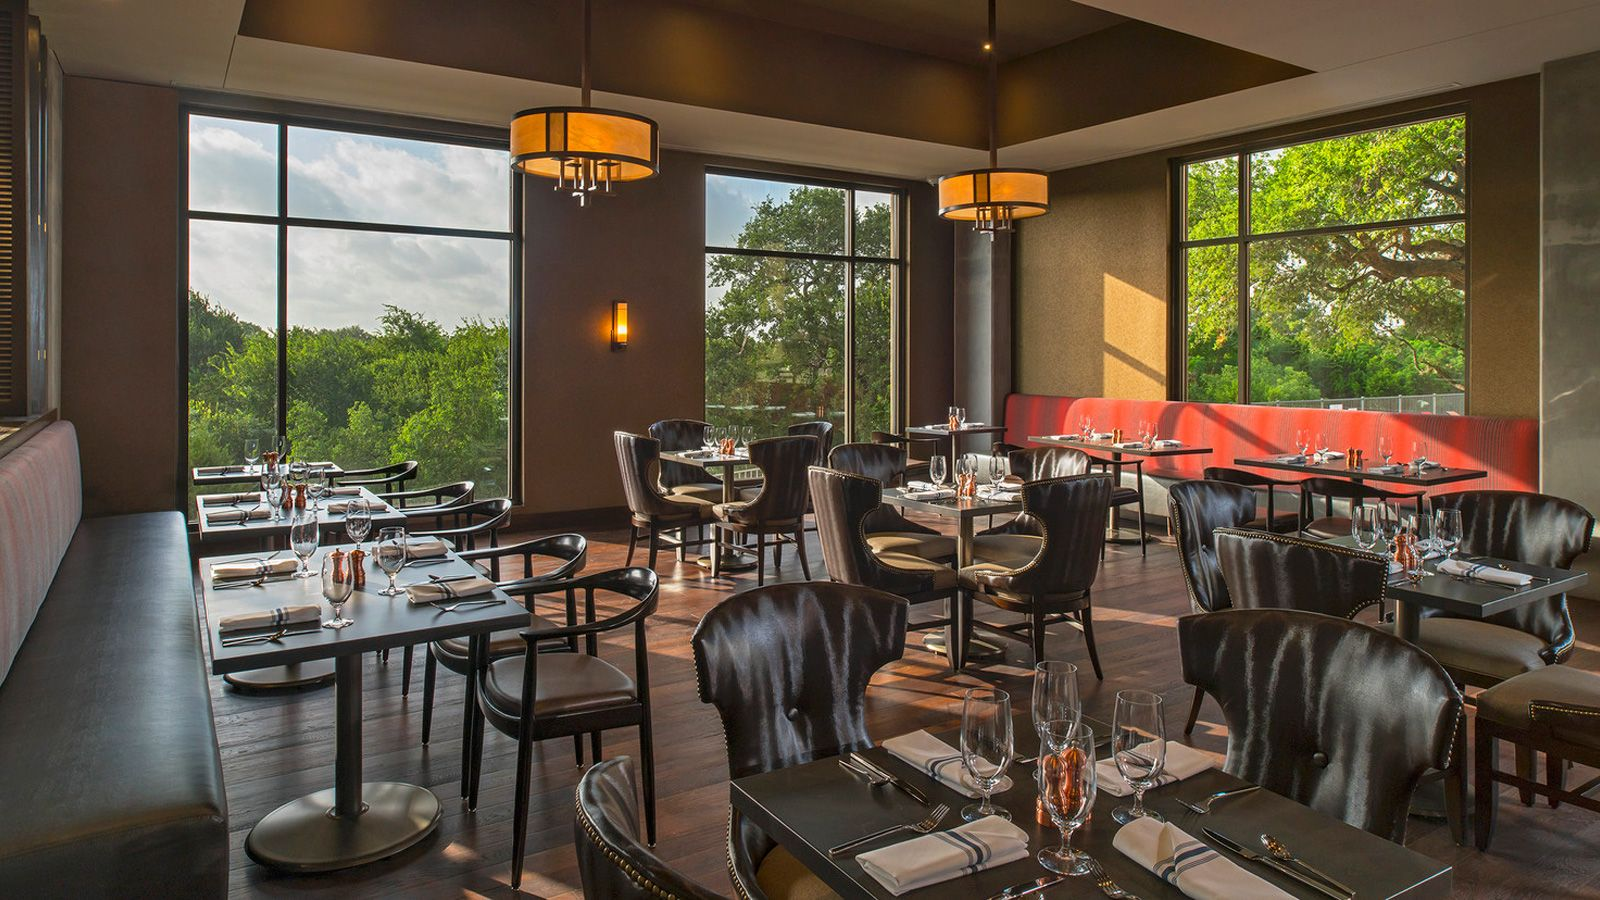 Georgetown TX Restaurants - Brix And Ale